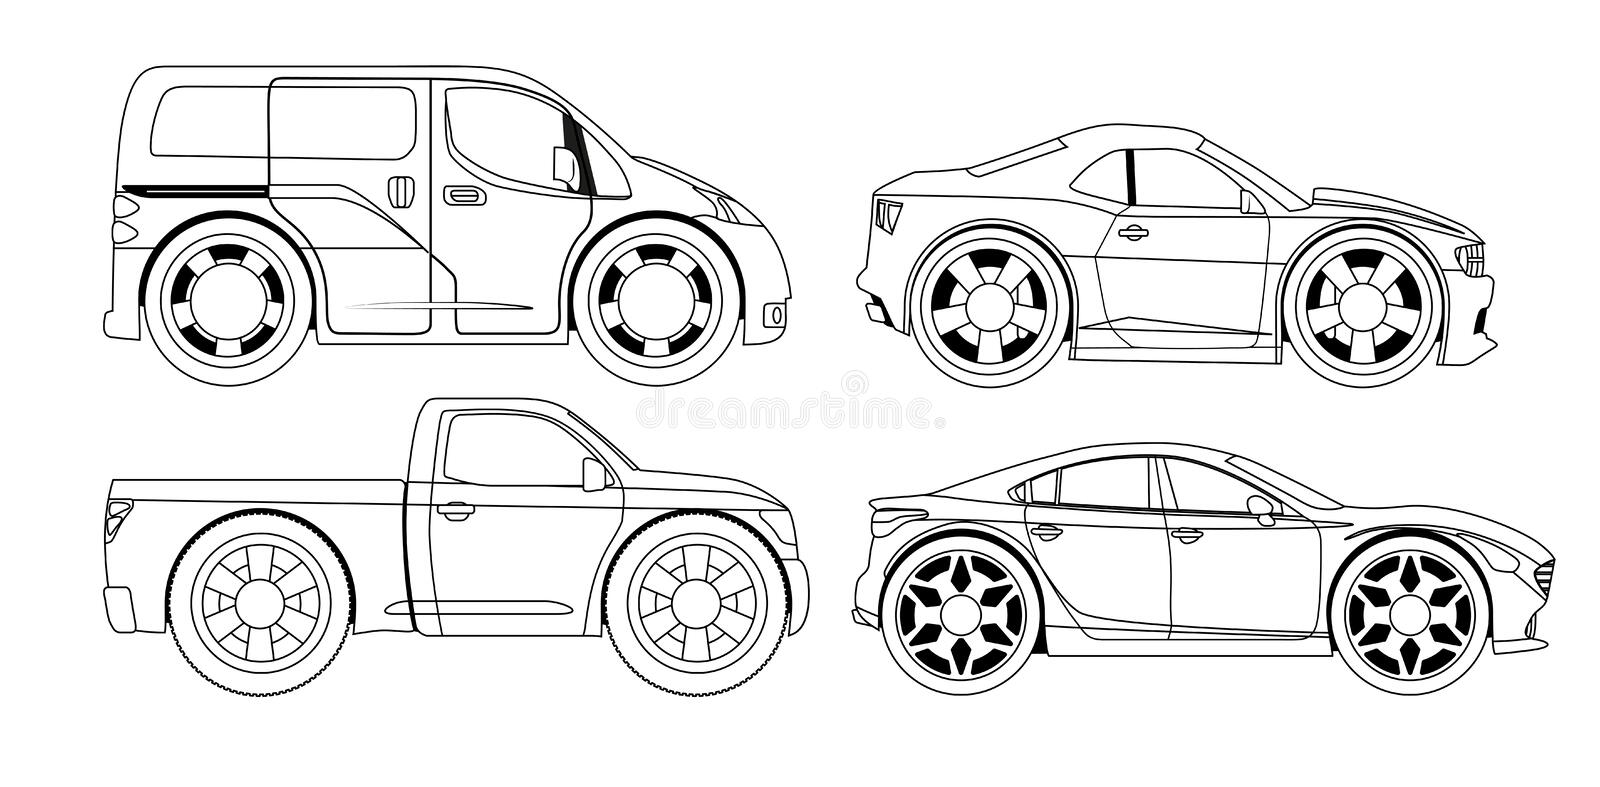 Coloring book: stylized cars set stock illustration